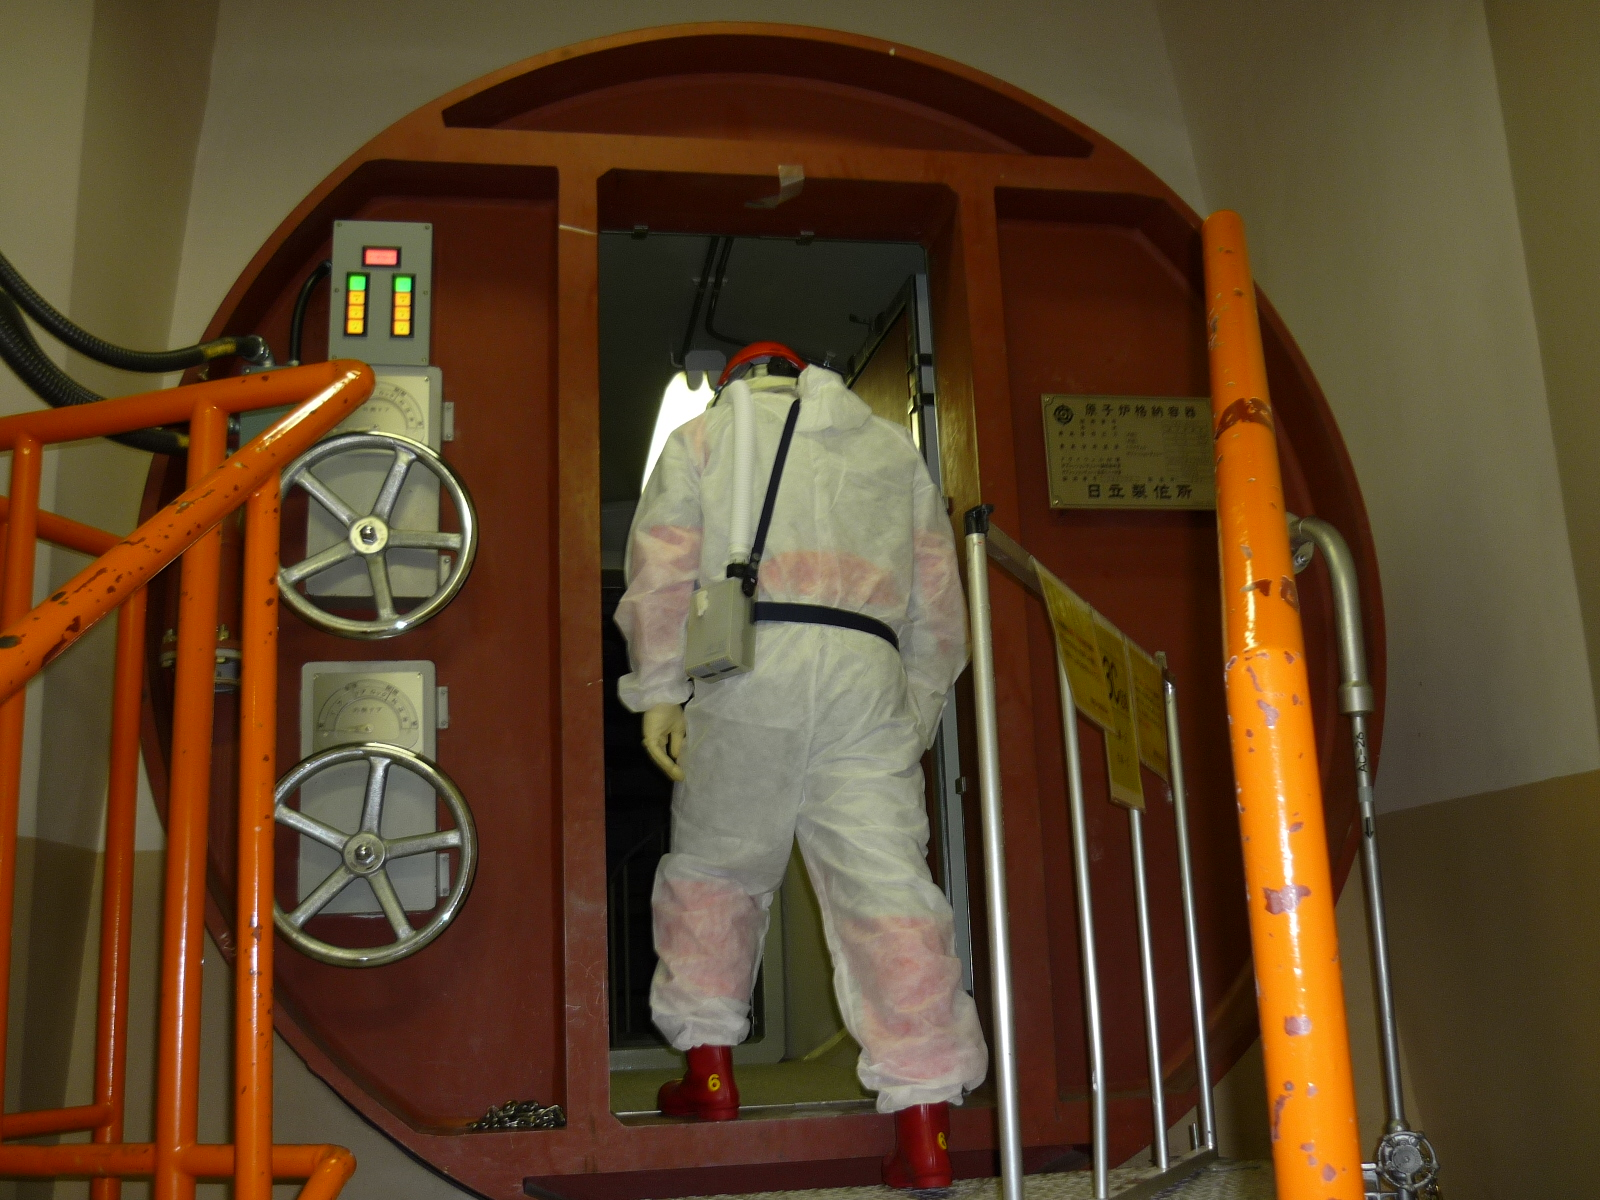 Checking inside of the reactor containment vessel of Unit 4, Fukushima Daini Nuclear Power Station (Opening an airlock door for workers)